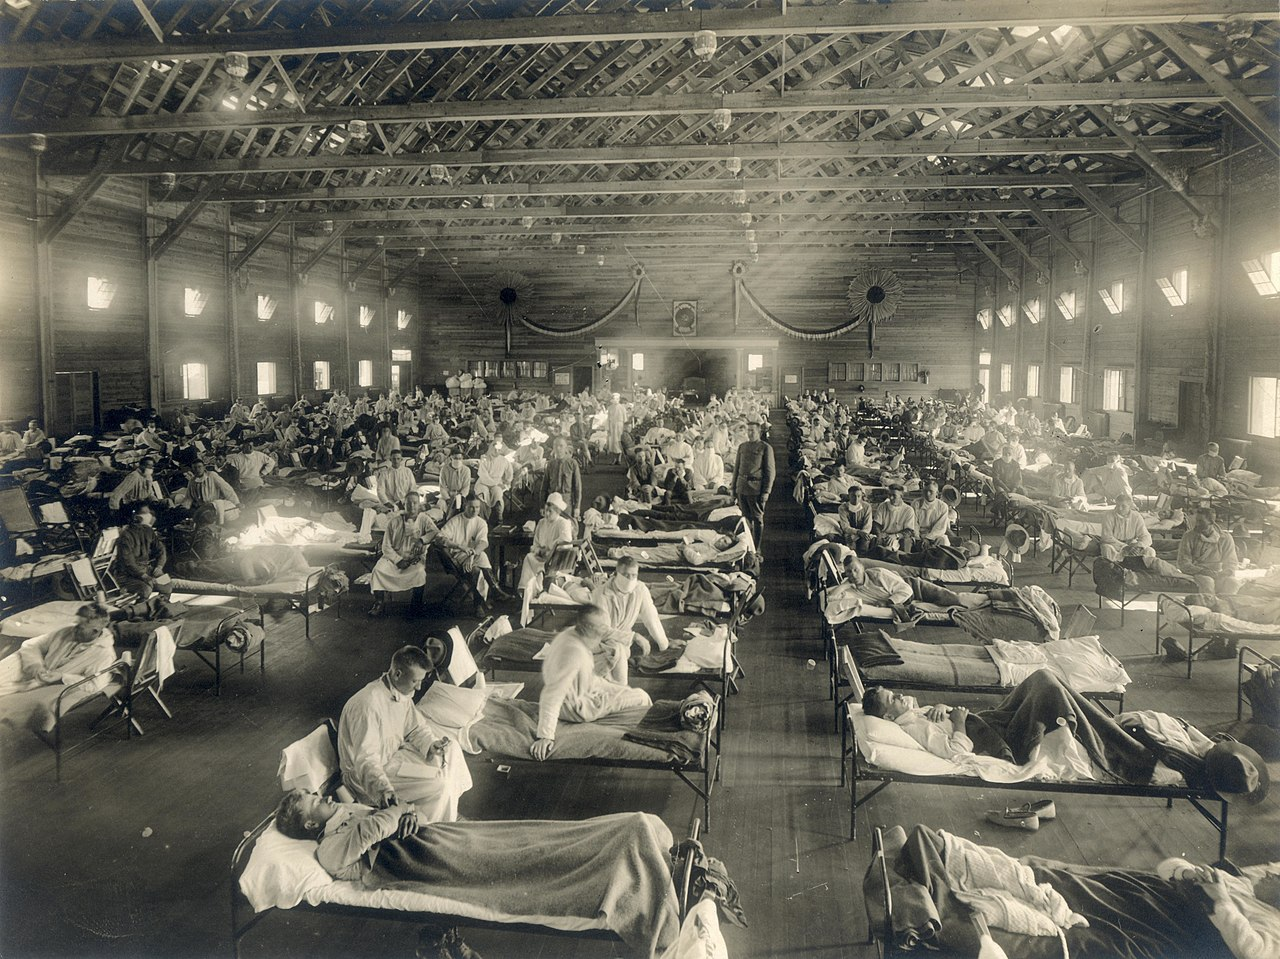 Influenza 1918: The Disappearance of Memory